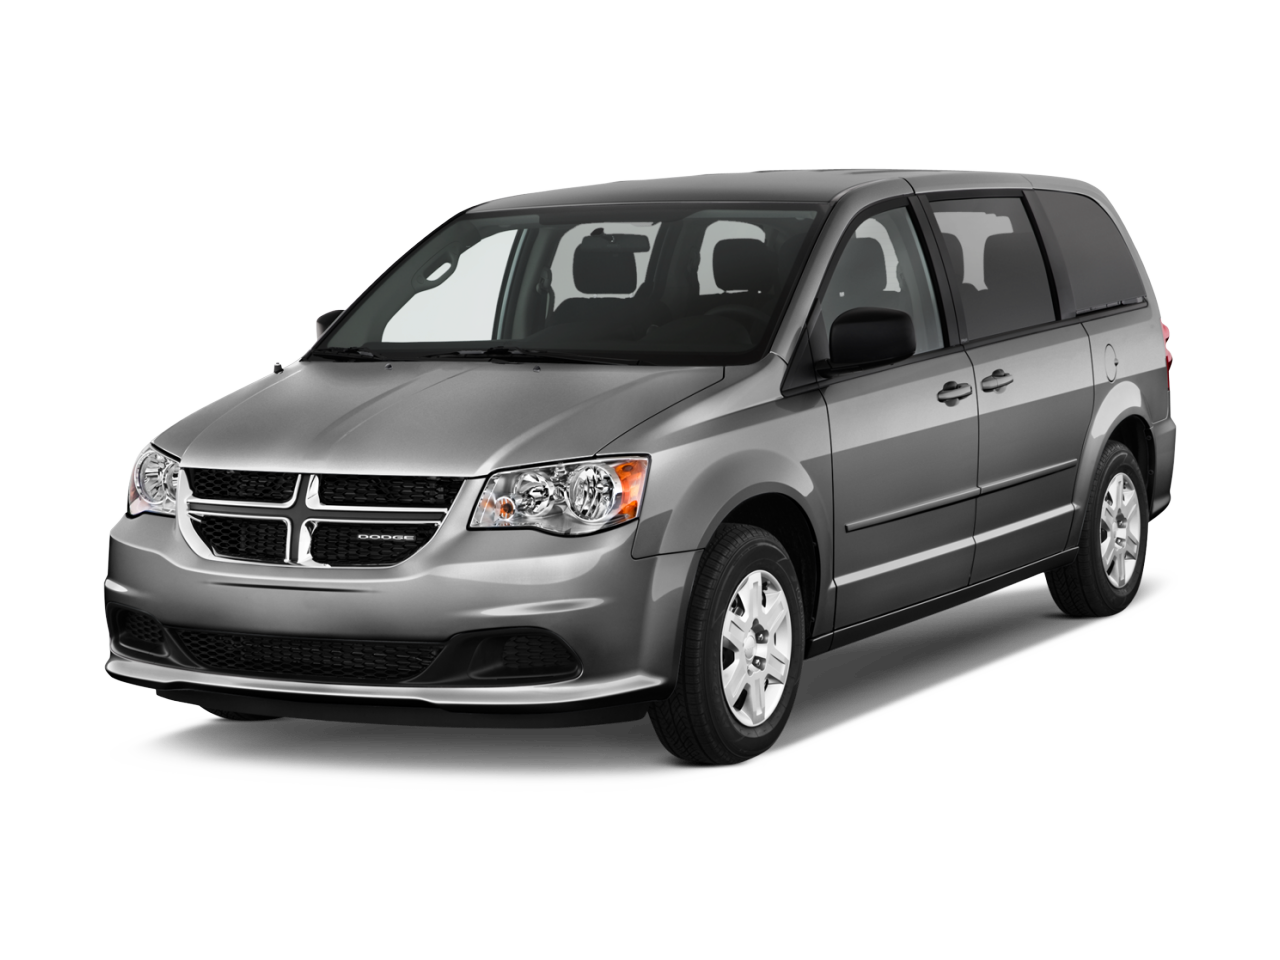 12 The Best 2019 Dodge Caravan Picture